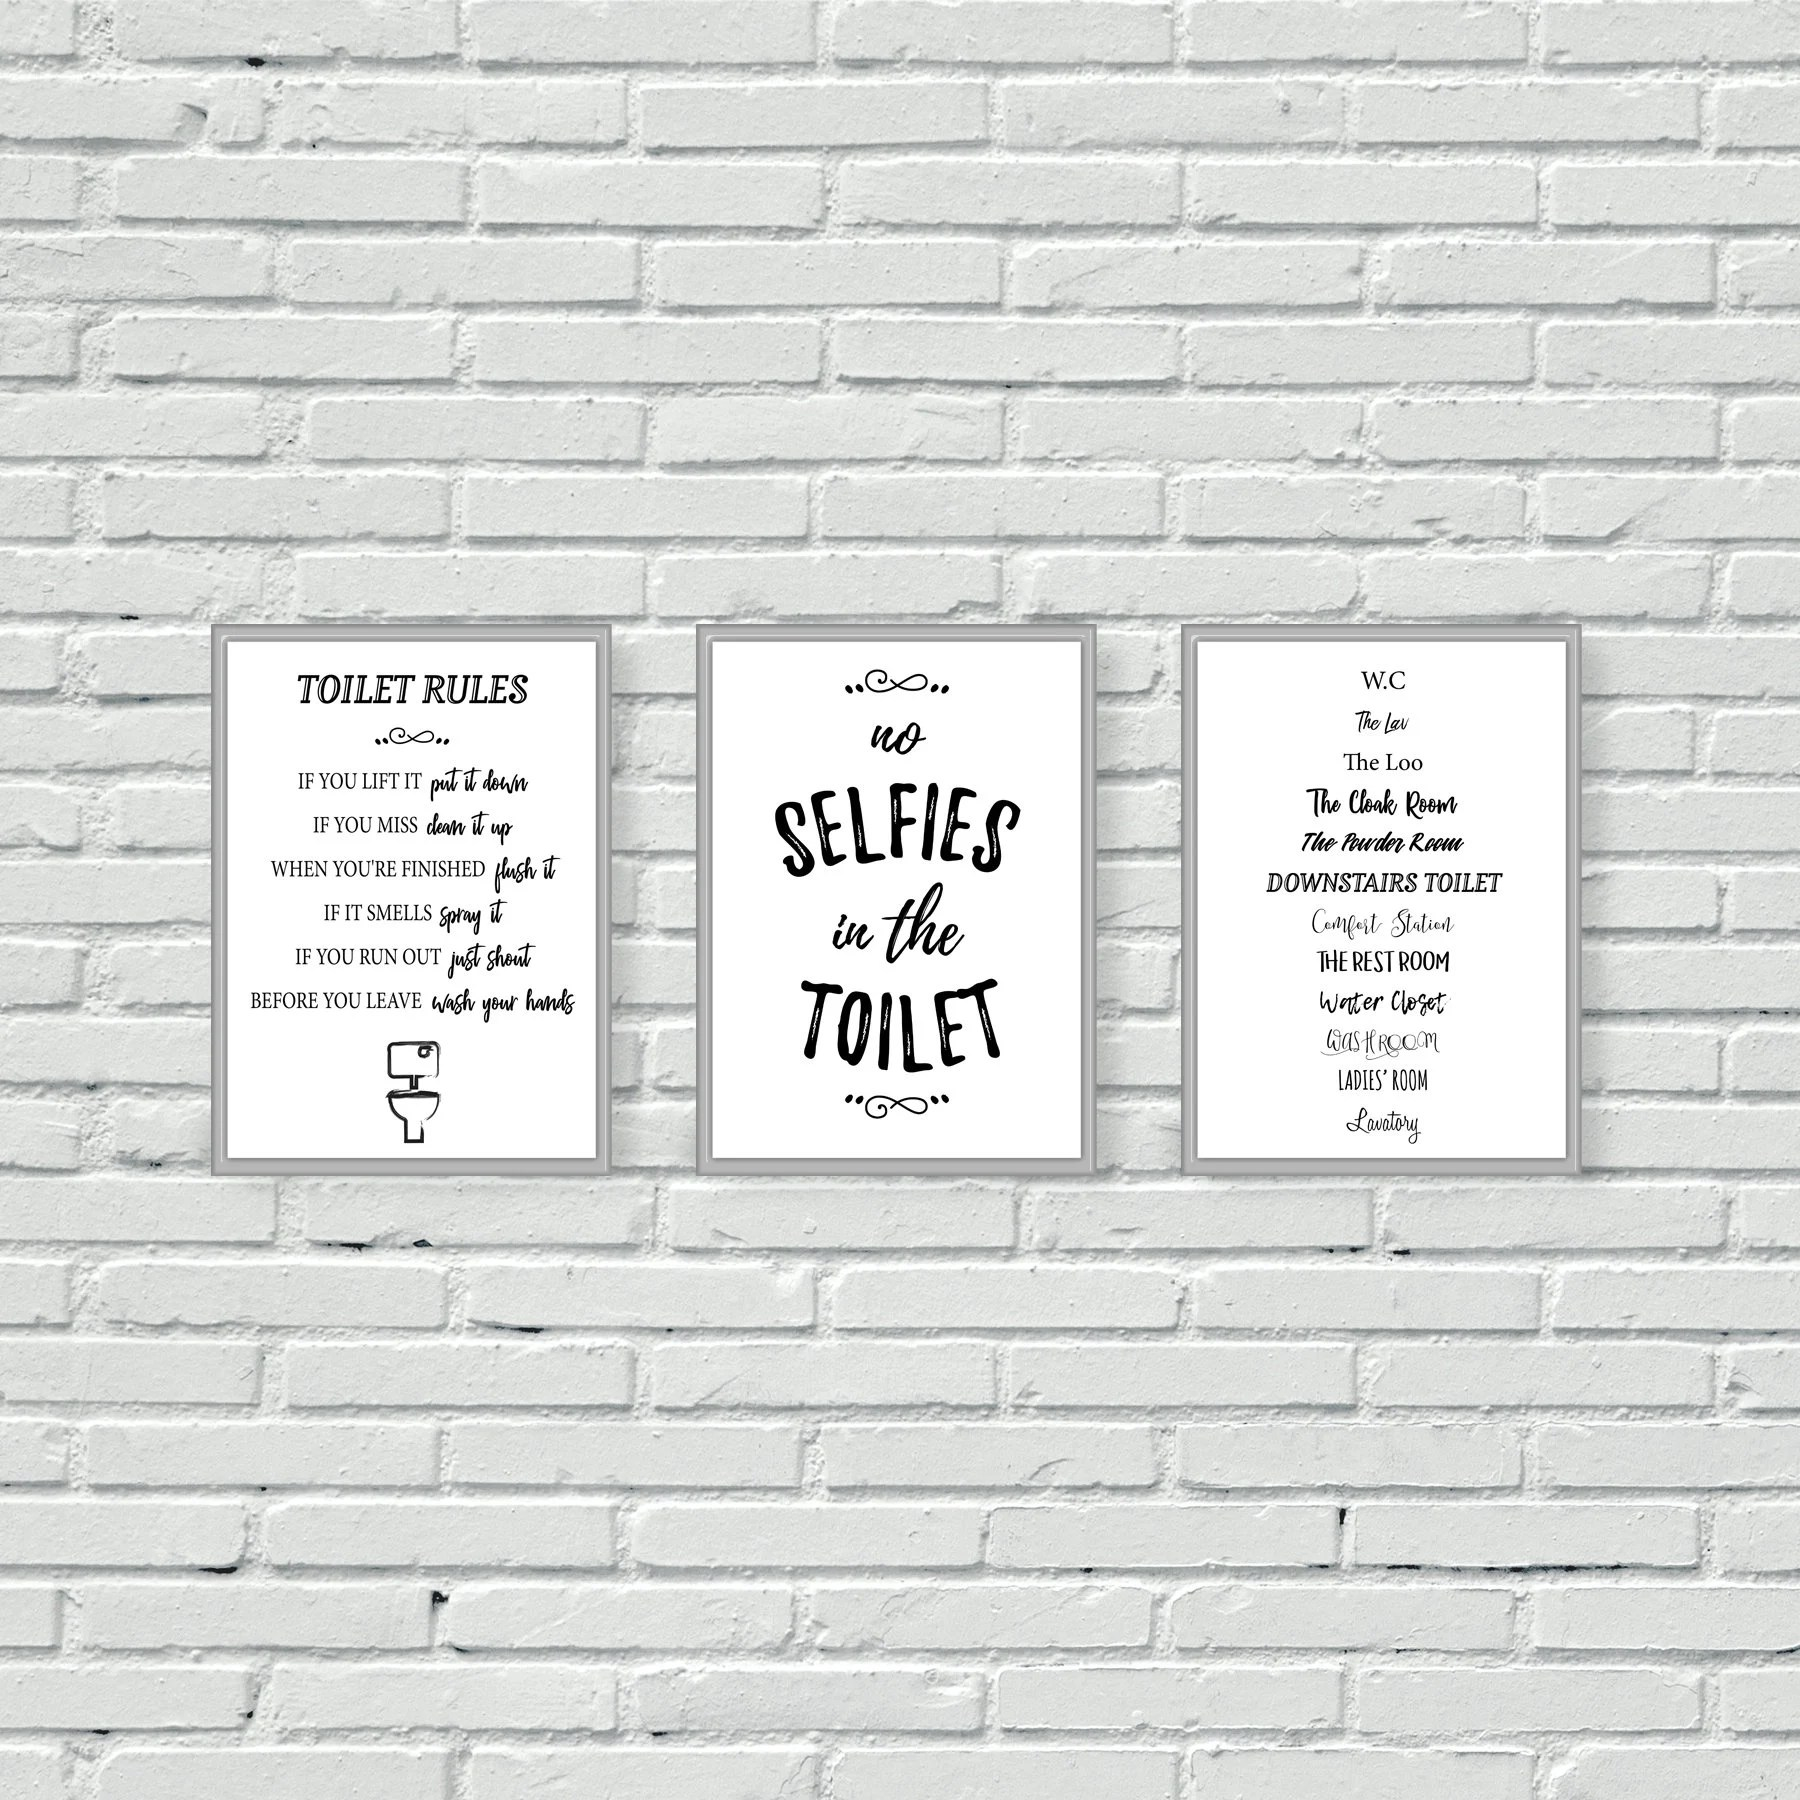 Toilet Wall Art Toilet Wall Prints Bathroom Wall Art Set Of Three Cloakroom W C Black And White Mono Downstairs Loo Wall Decor Bathroom Decor A4